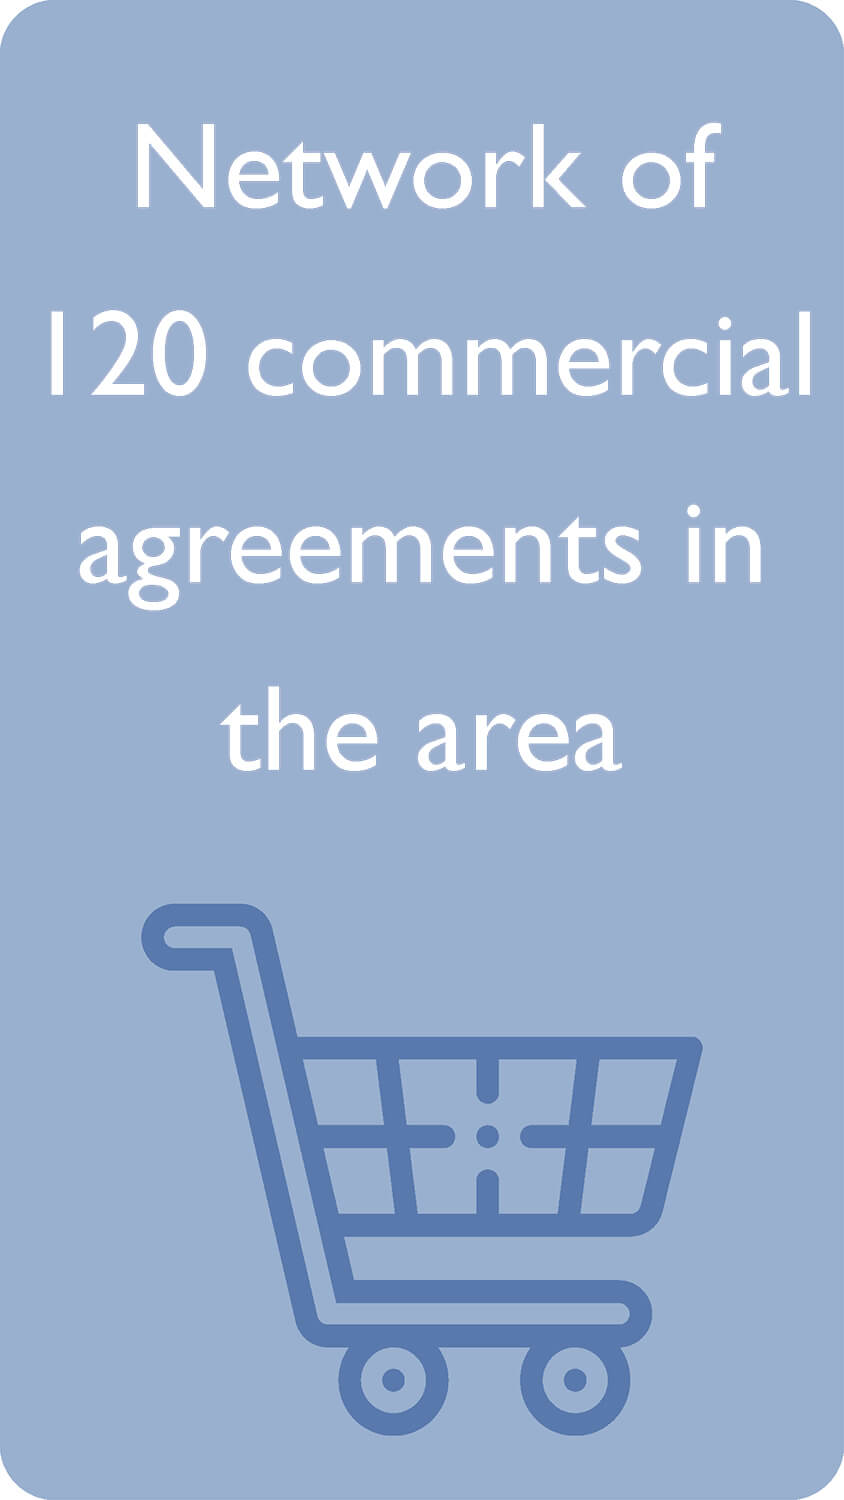 Network of 120 commercial agreements in the area